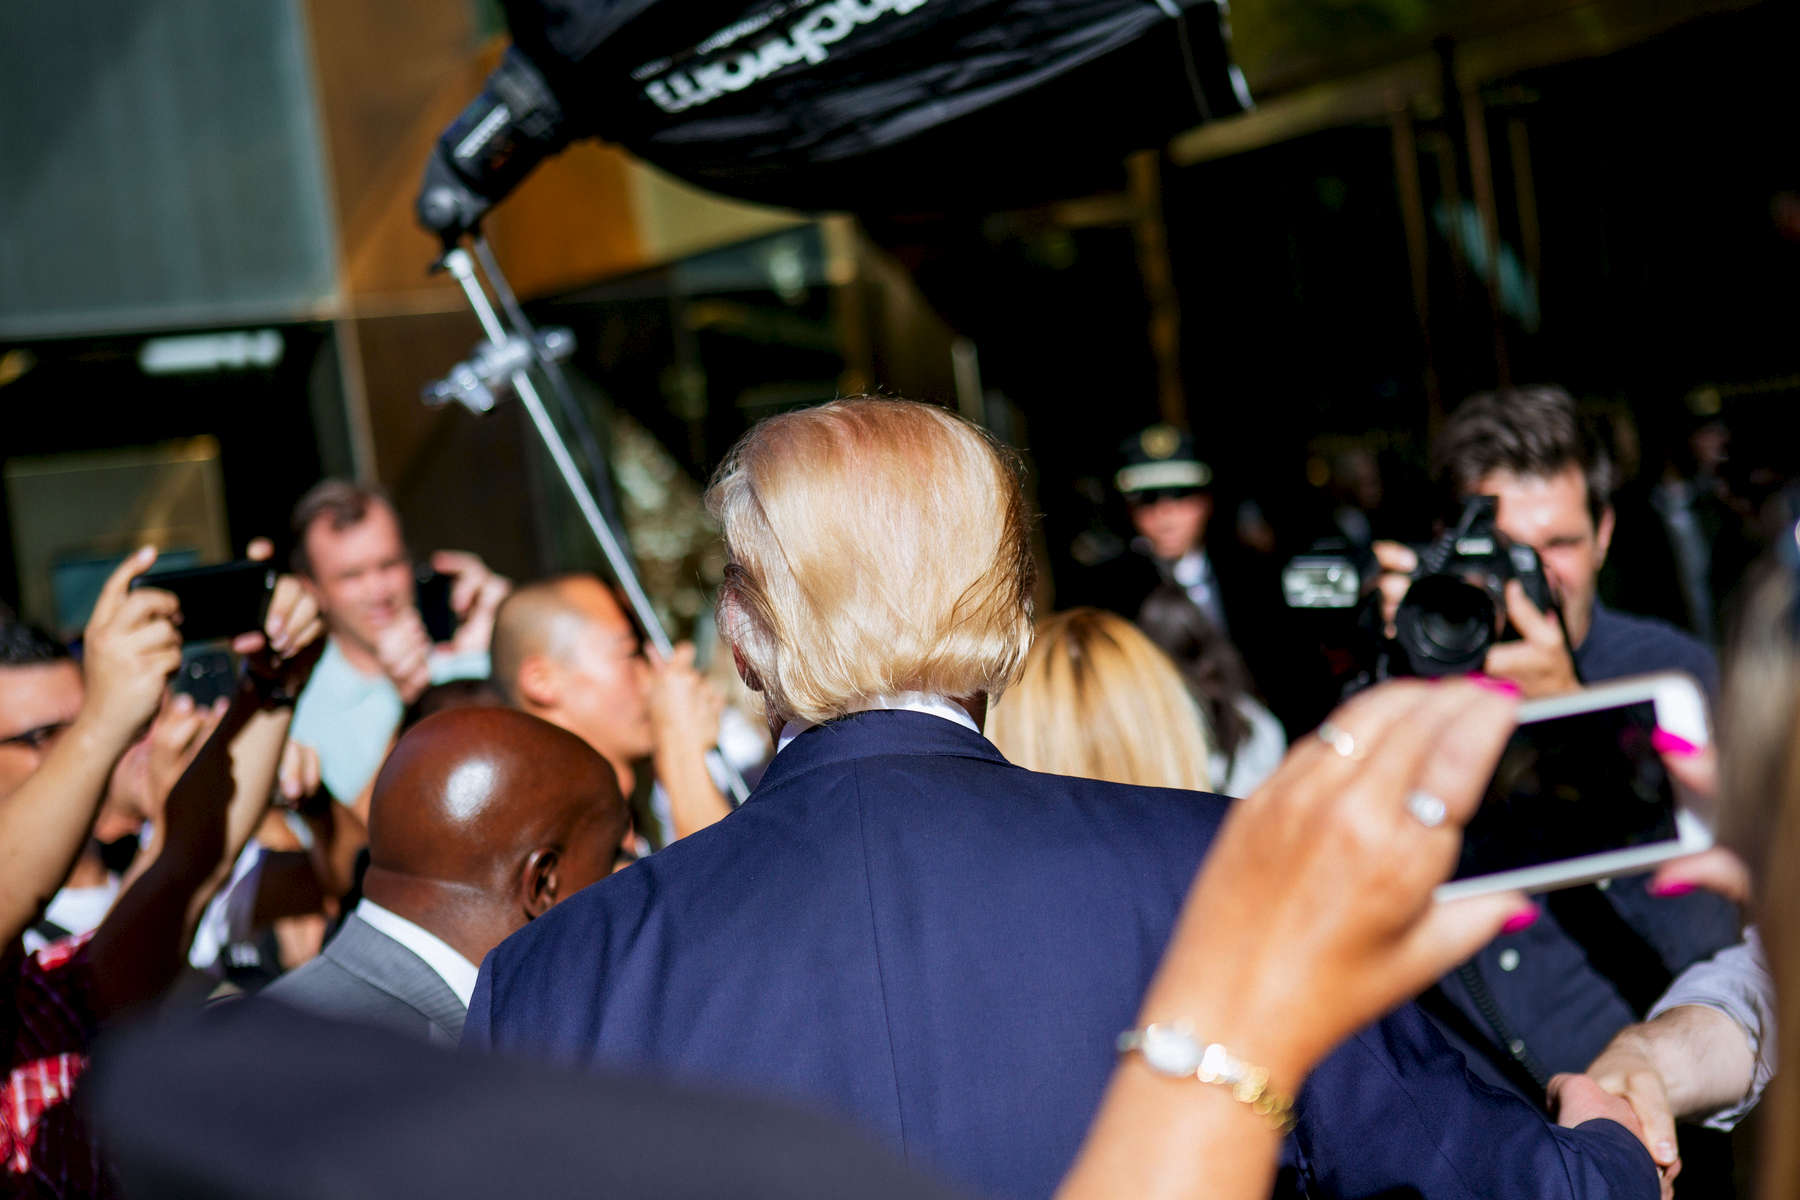 U.S. Presidential Candidate Donald Trump waves to onlookers after emerging briefly from Trump Tower dugong photo shoot Thursday, Sept. 24, 2015, in New York . (AP Photo/Kevin Hagen)